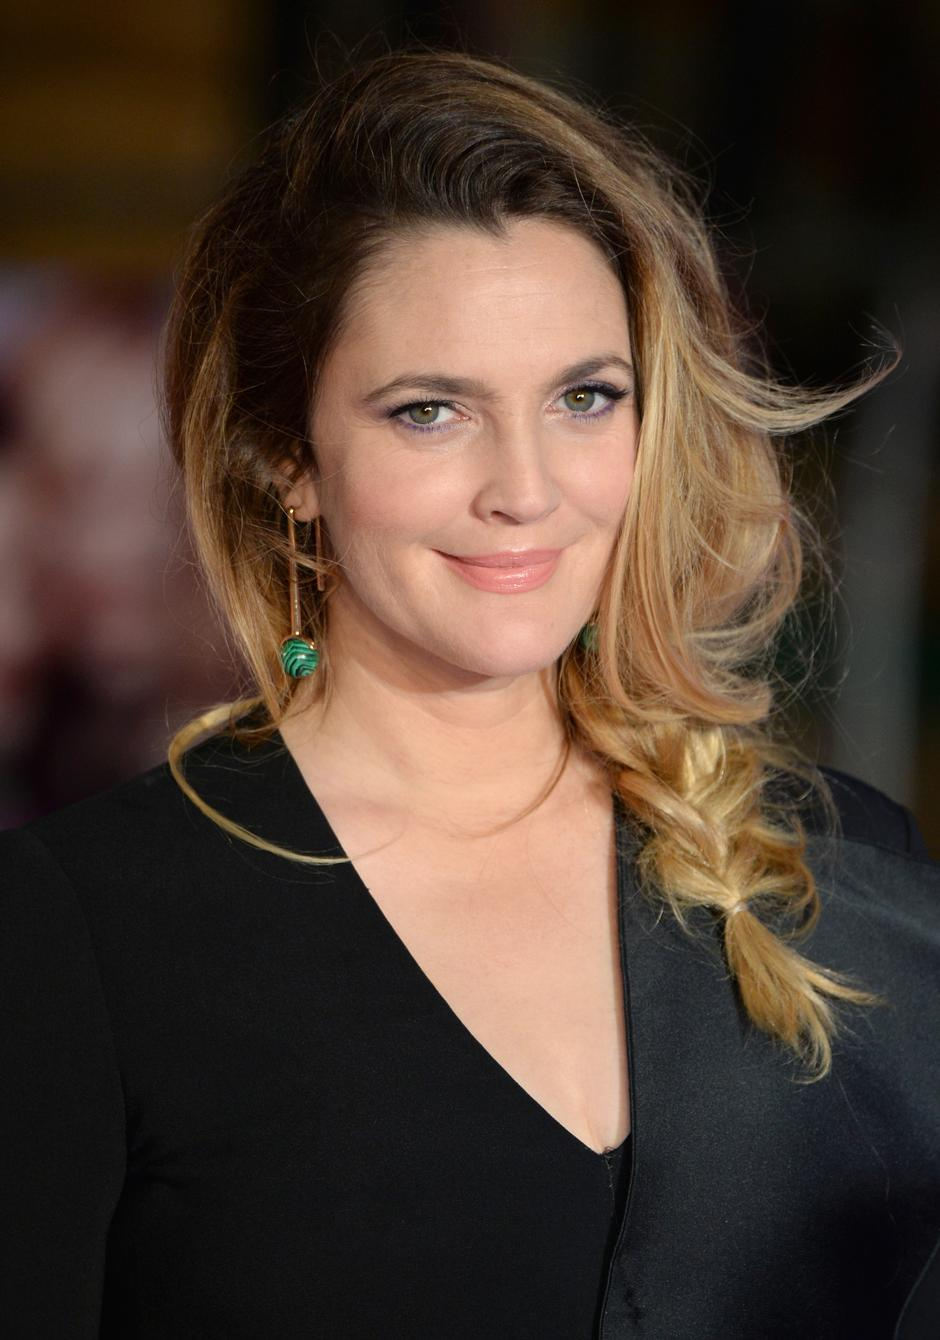 Drew Barrymore | Author: Doug Peters/Press Association/PIXSELL